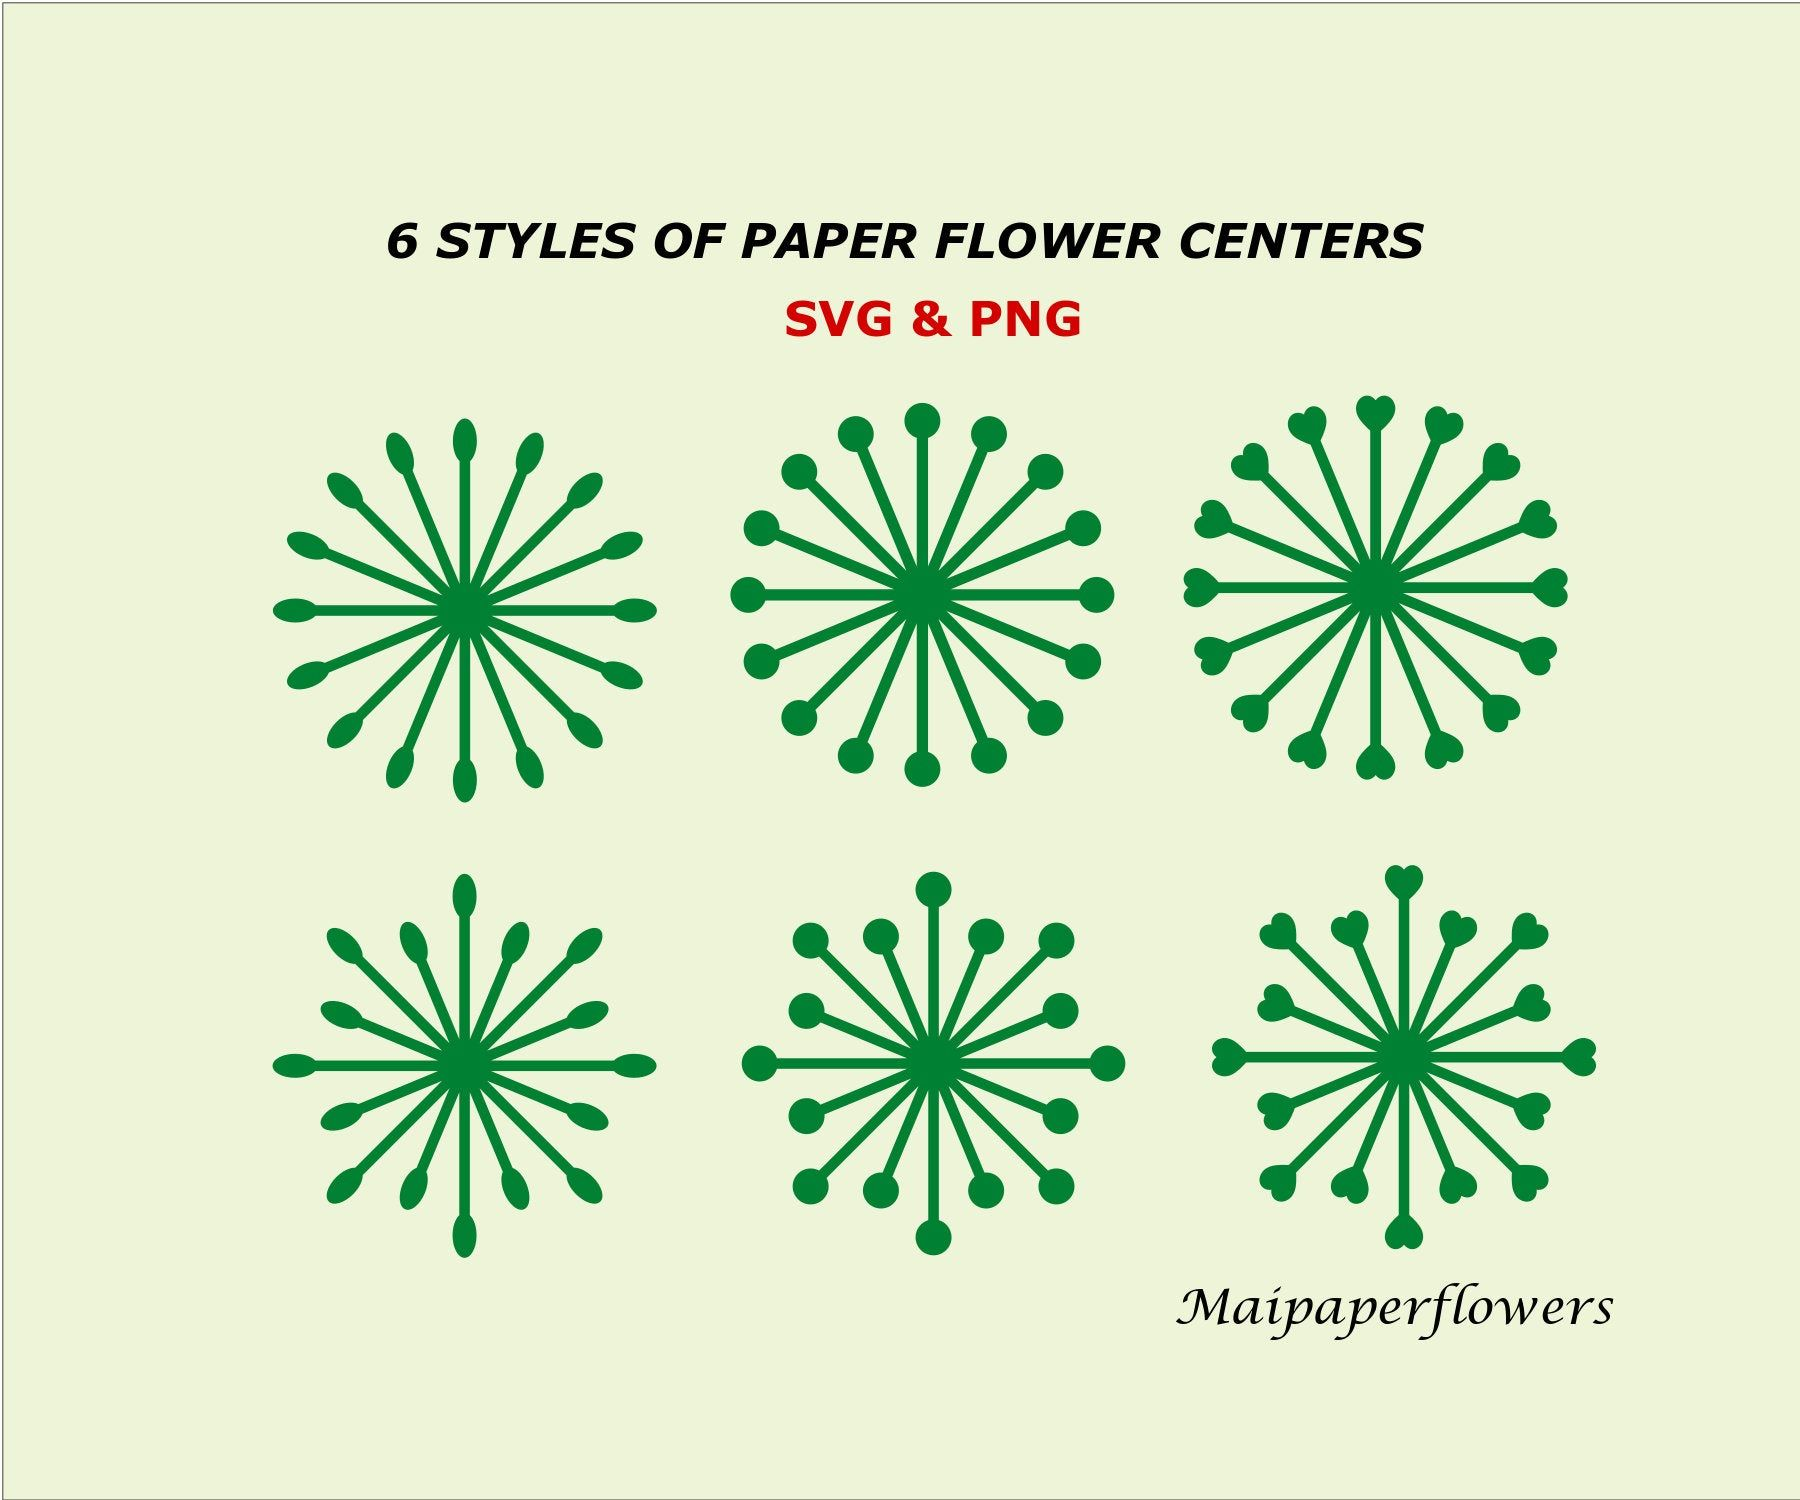 Paper Flower Centers, Flower Center Template, Paper Flower Center Template, Paper Flower Stamen, Flower Center Svg #bigpaperflowers